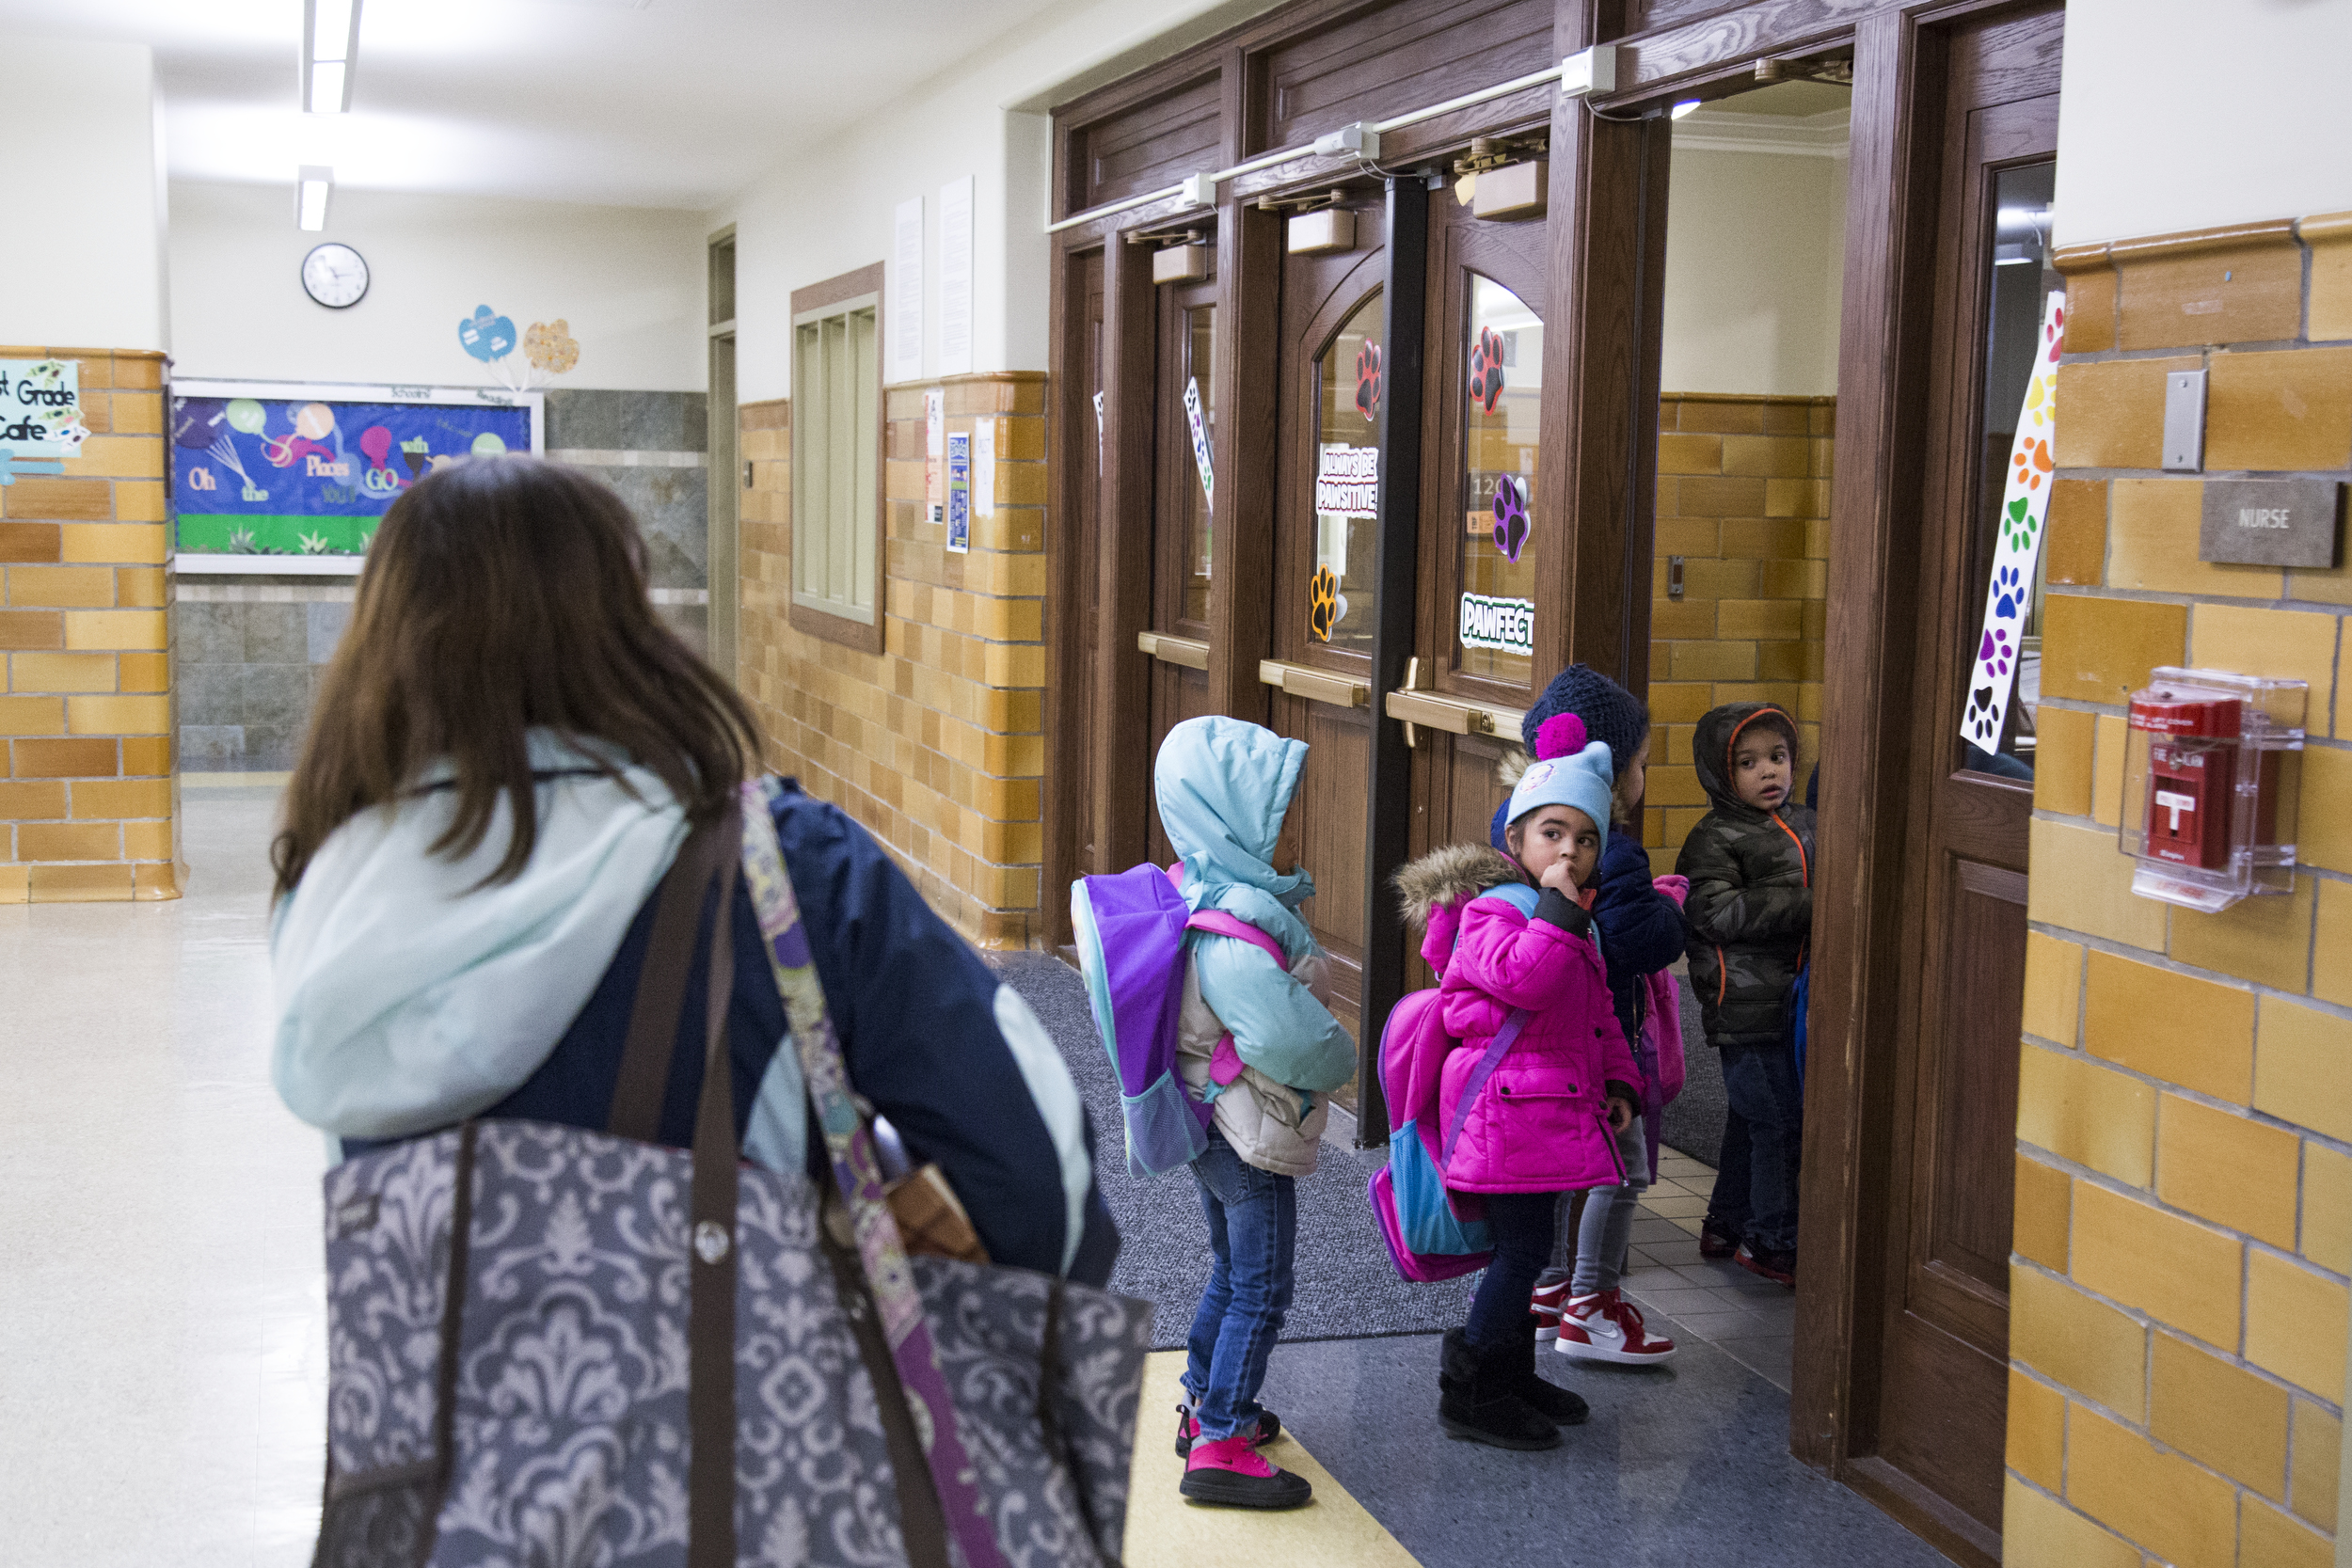 Christine Herne walks the children to the front door to wait for their parents to pick them up.